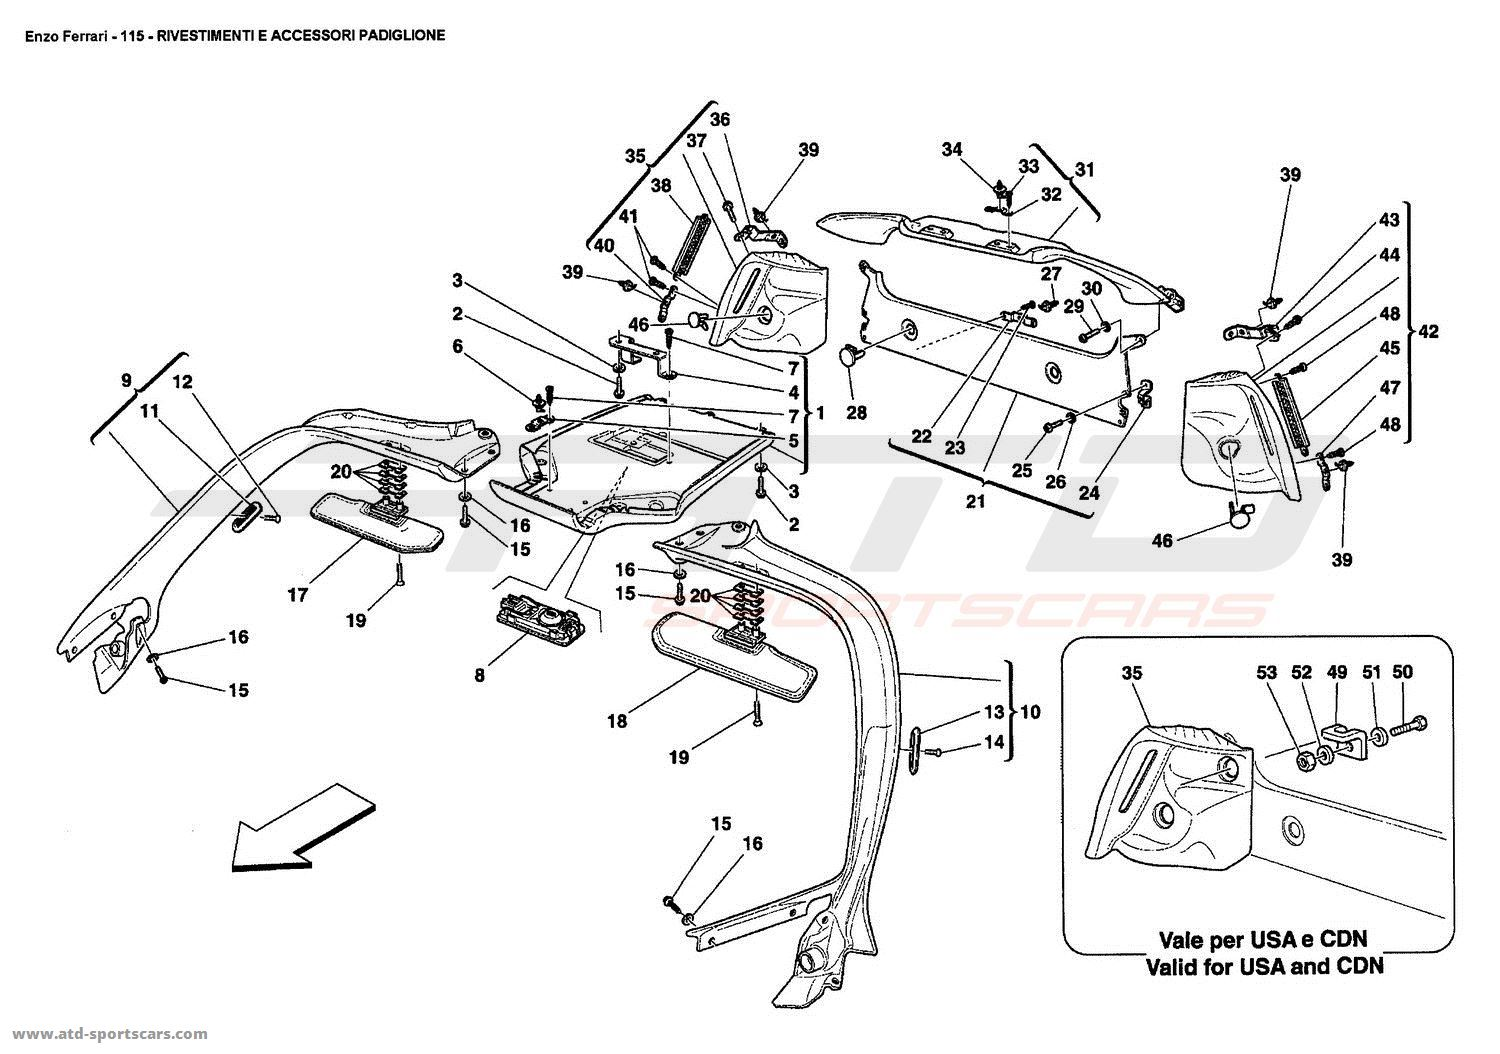 Ferrari Enzo ROOF PANEL UPHOLSTERY AND ACCESSORIES parts